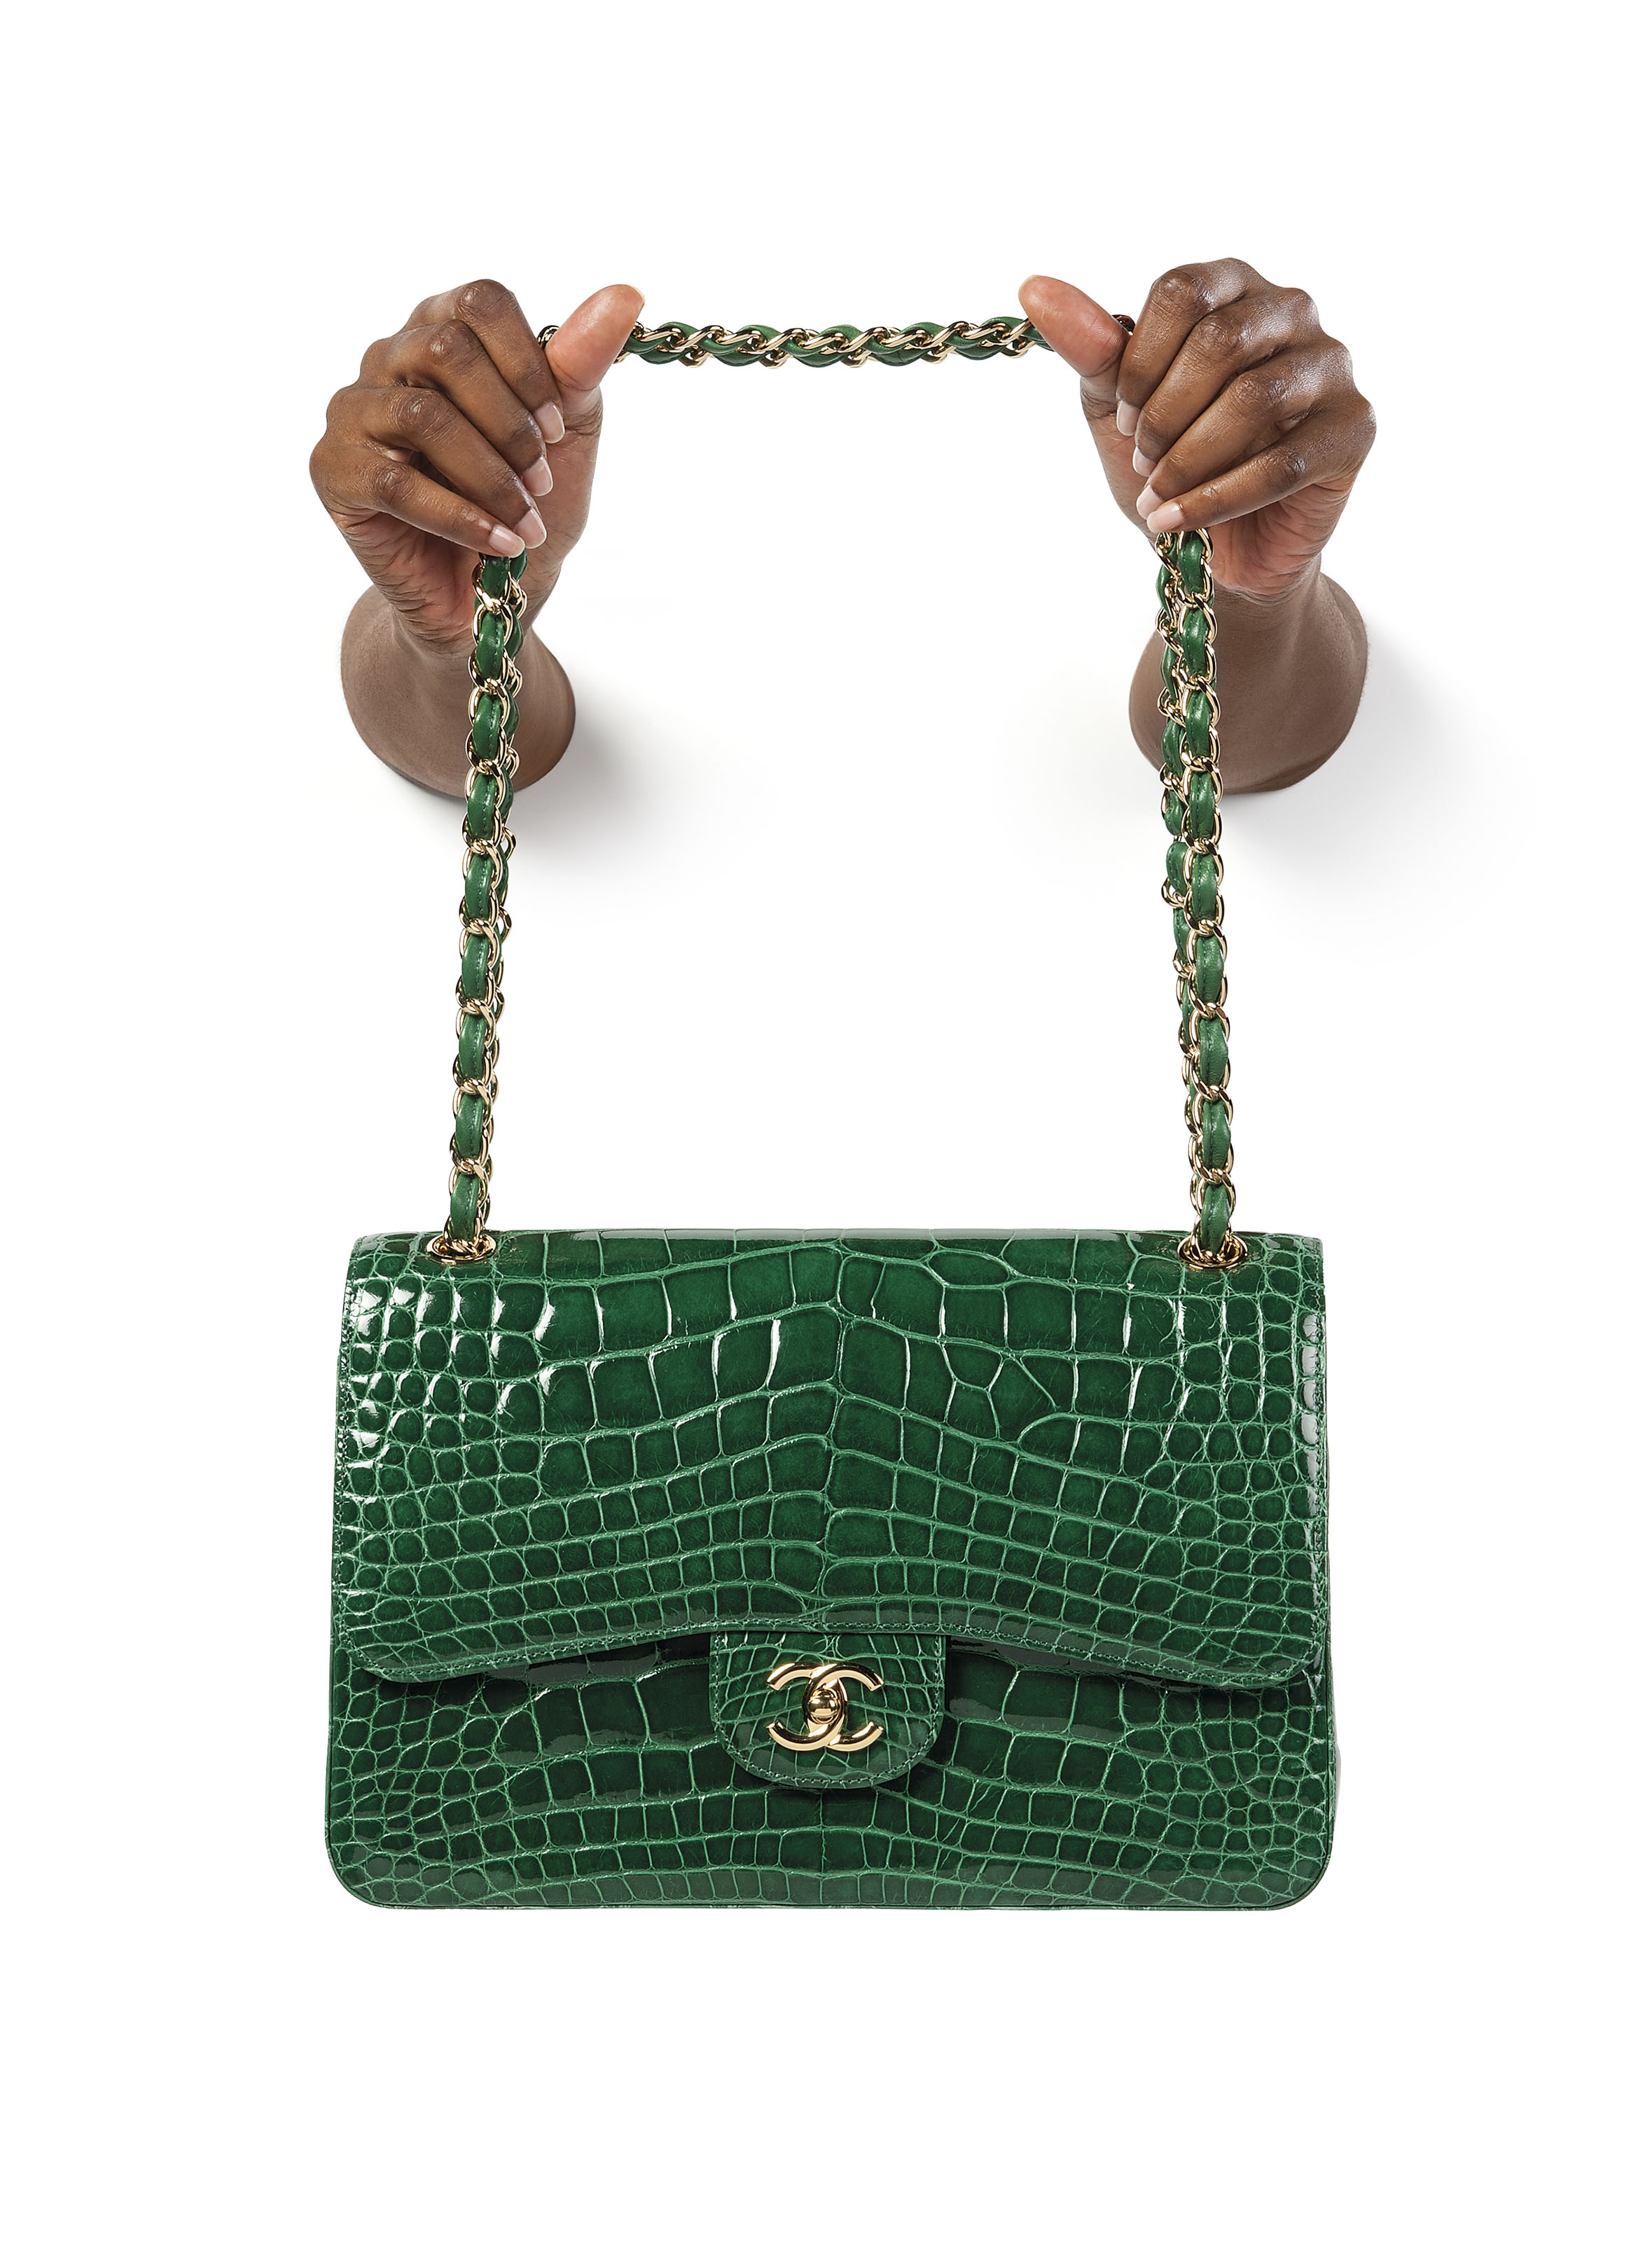 4e24f704cad819 A SHINY EMERALD GREEN ALLIGATOR JUMBO DOUBLE FLAP WITH GOLD HARDWARE. CHANEL  ...